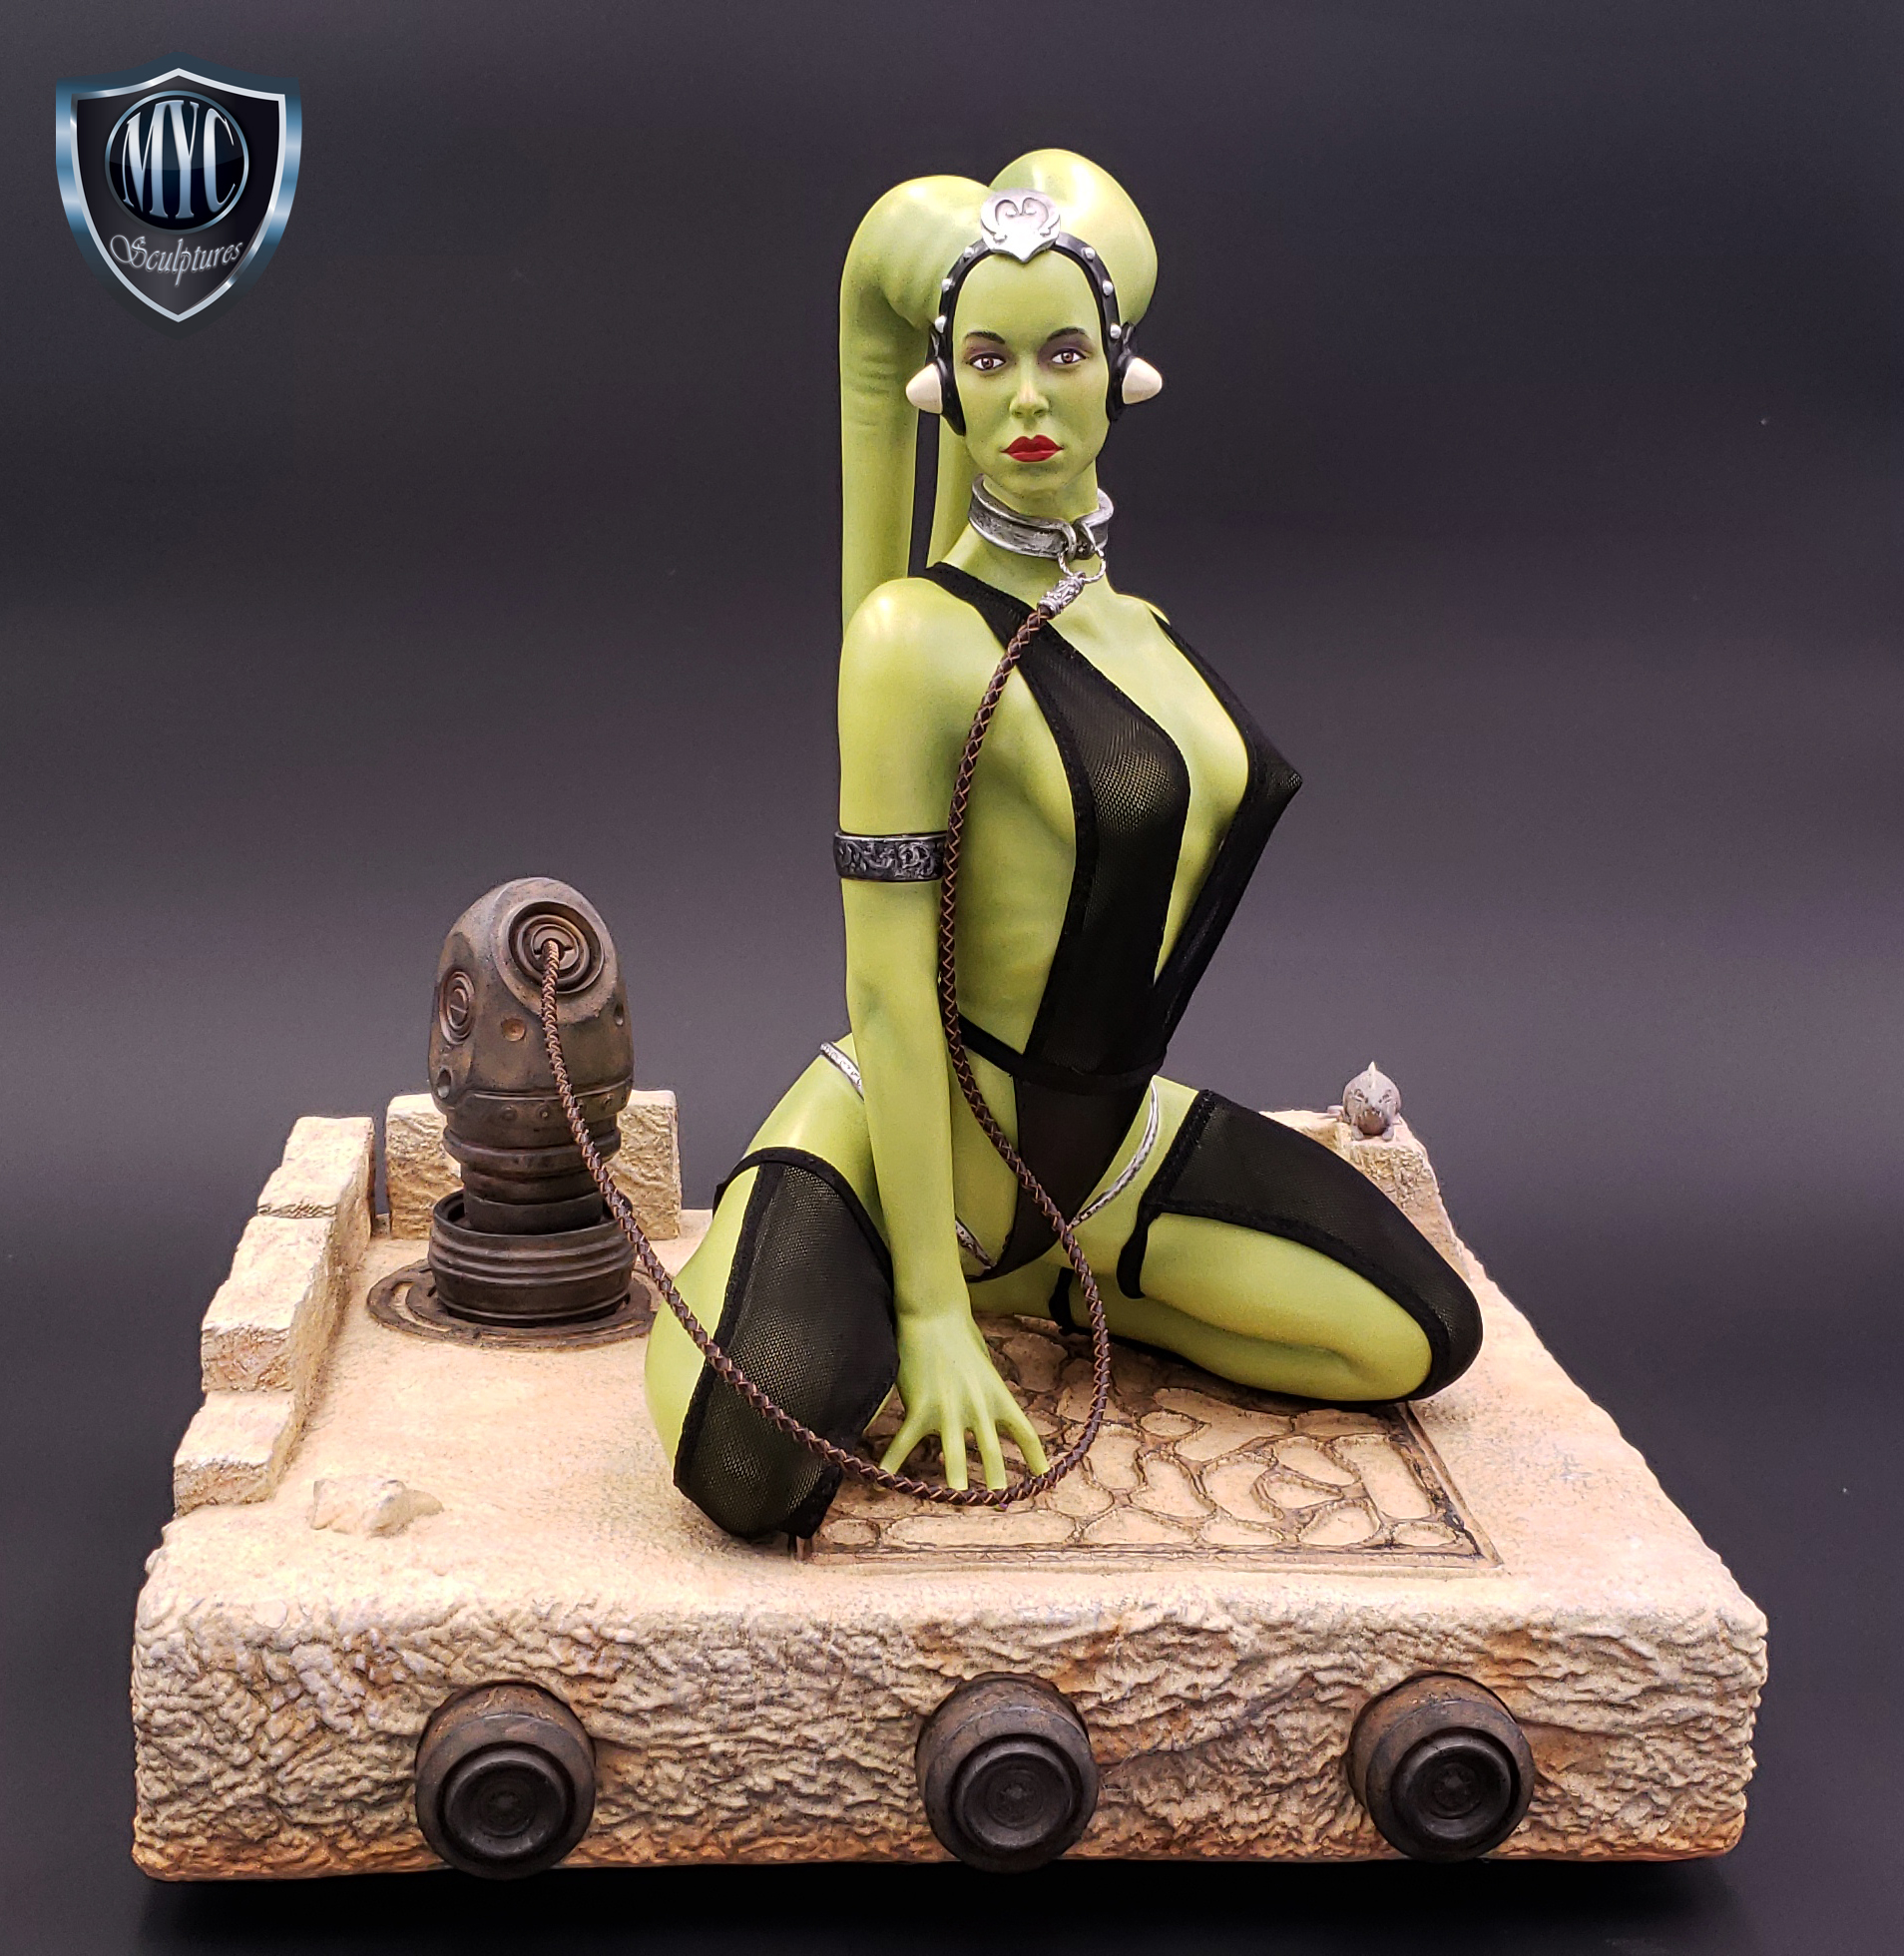 Oola_Star_Wars_Statue_21